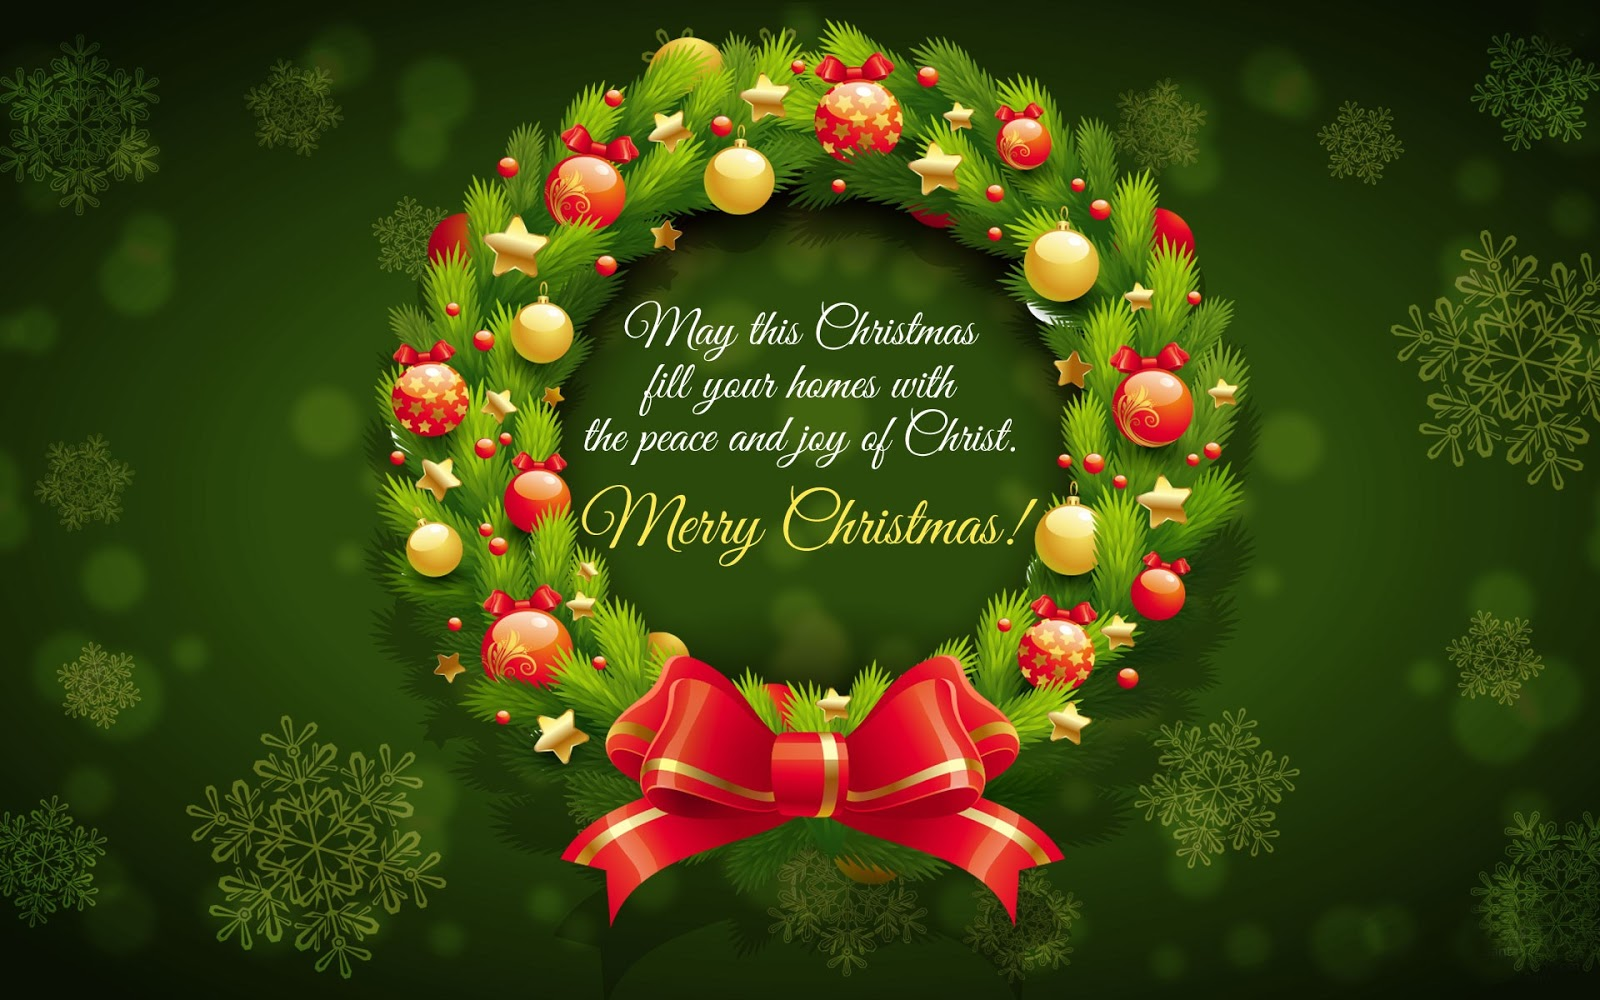 Quotes Xmas Wishes Top 10 Merry Christmas Wishes Quotes